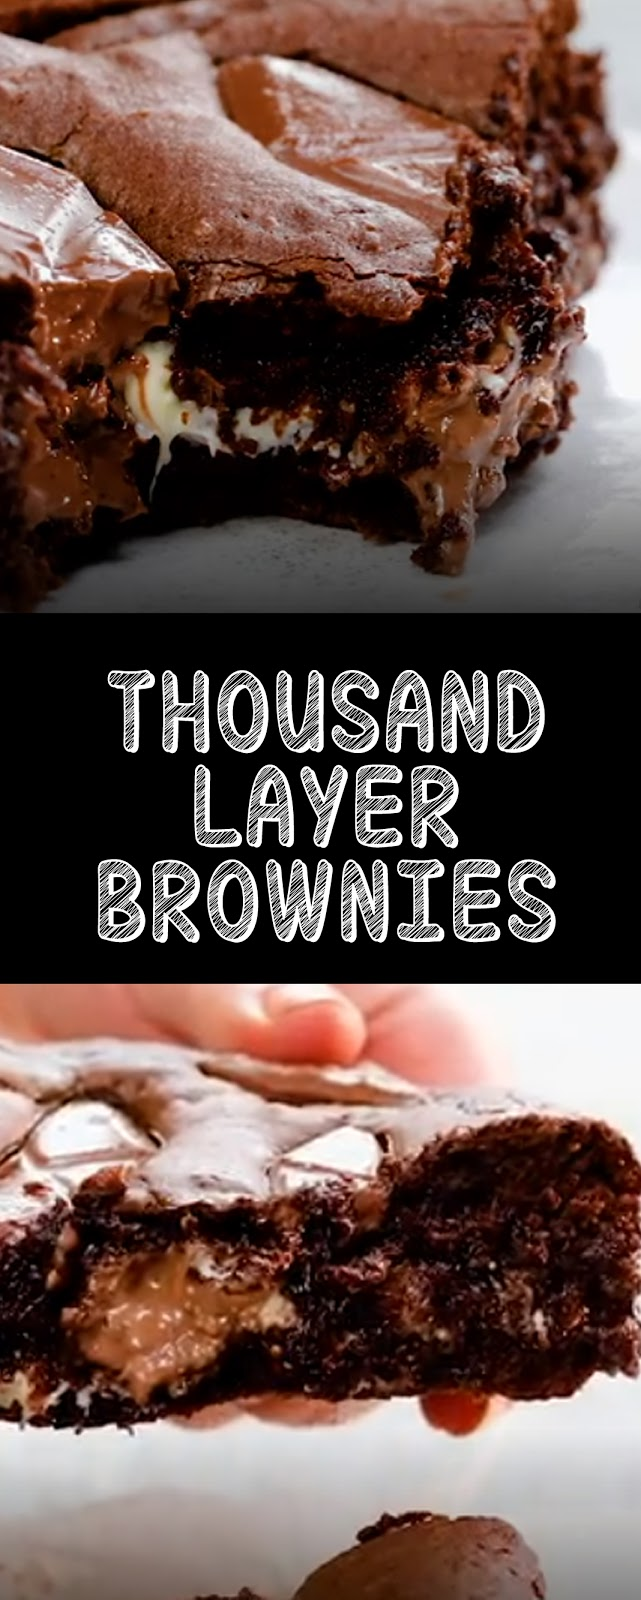 Recipe Thousand Layer Brownies #cakes #brownies